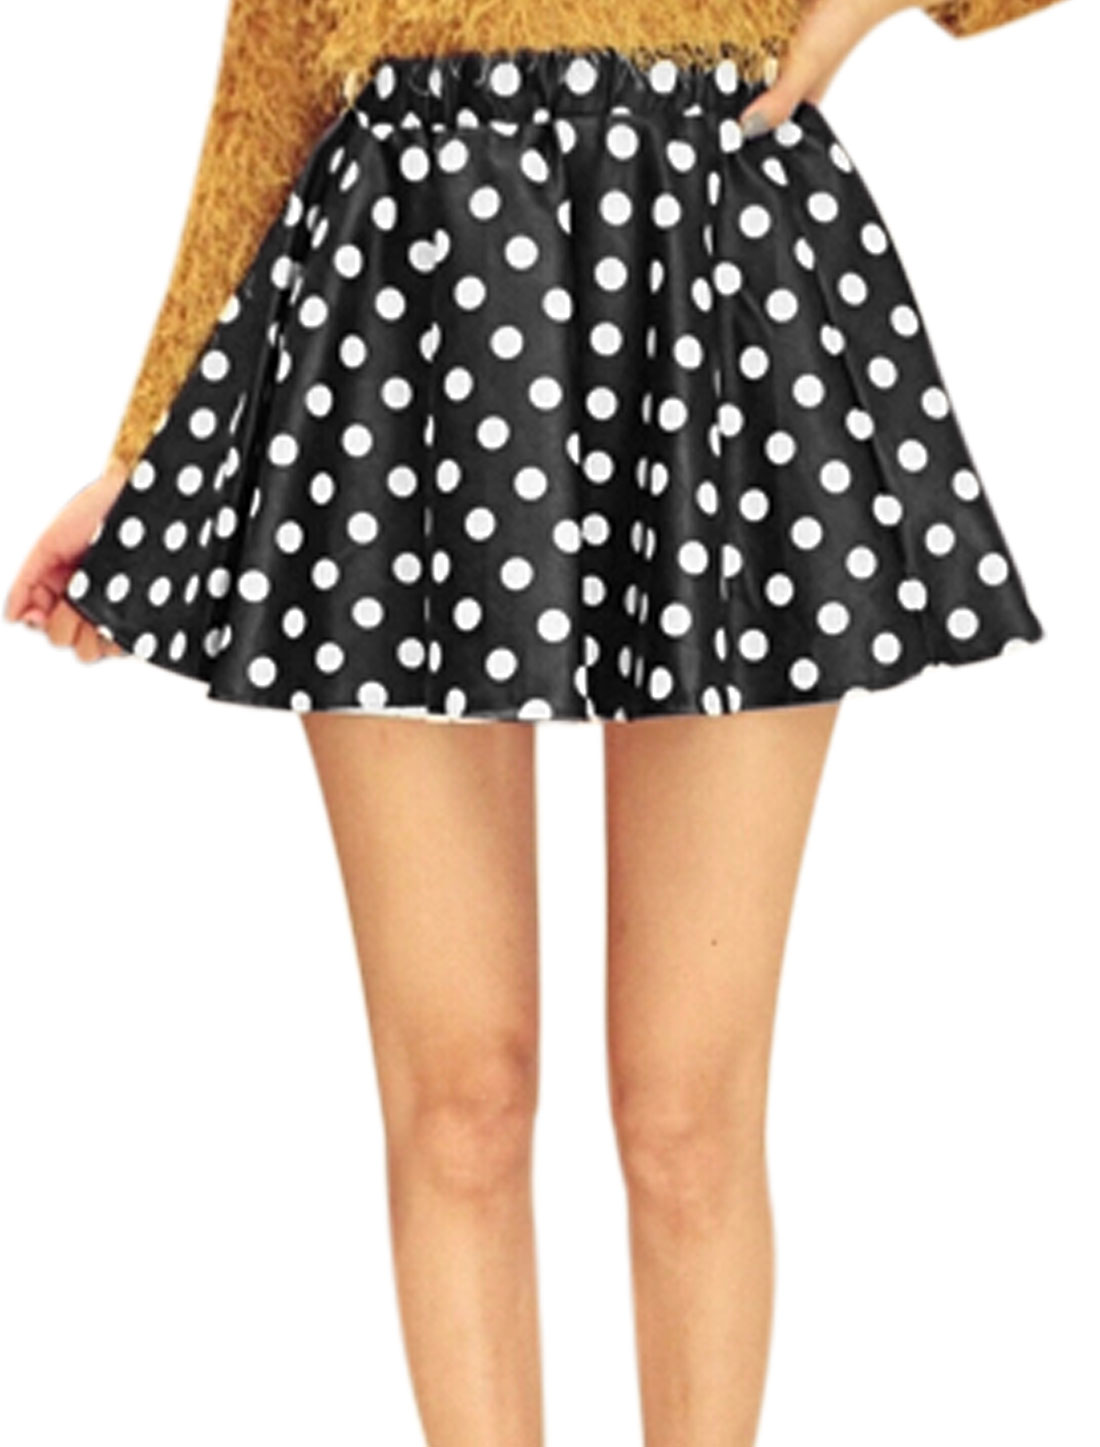 Lady Dots Prints Elastic Waist Imitation Leather Skirt Black White M